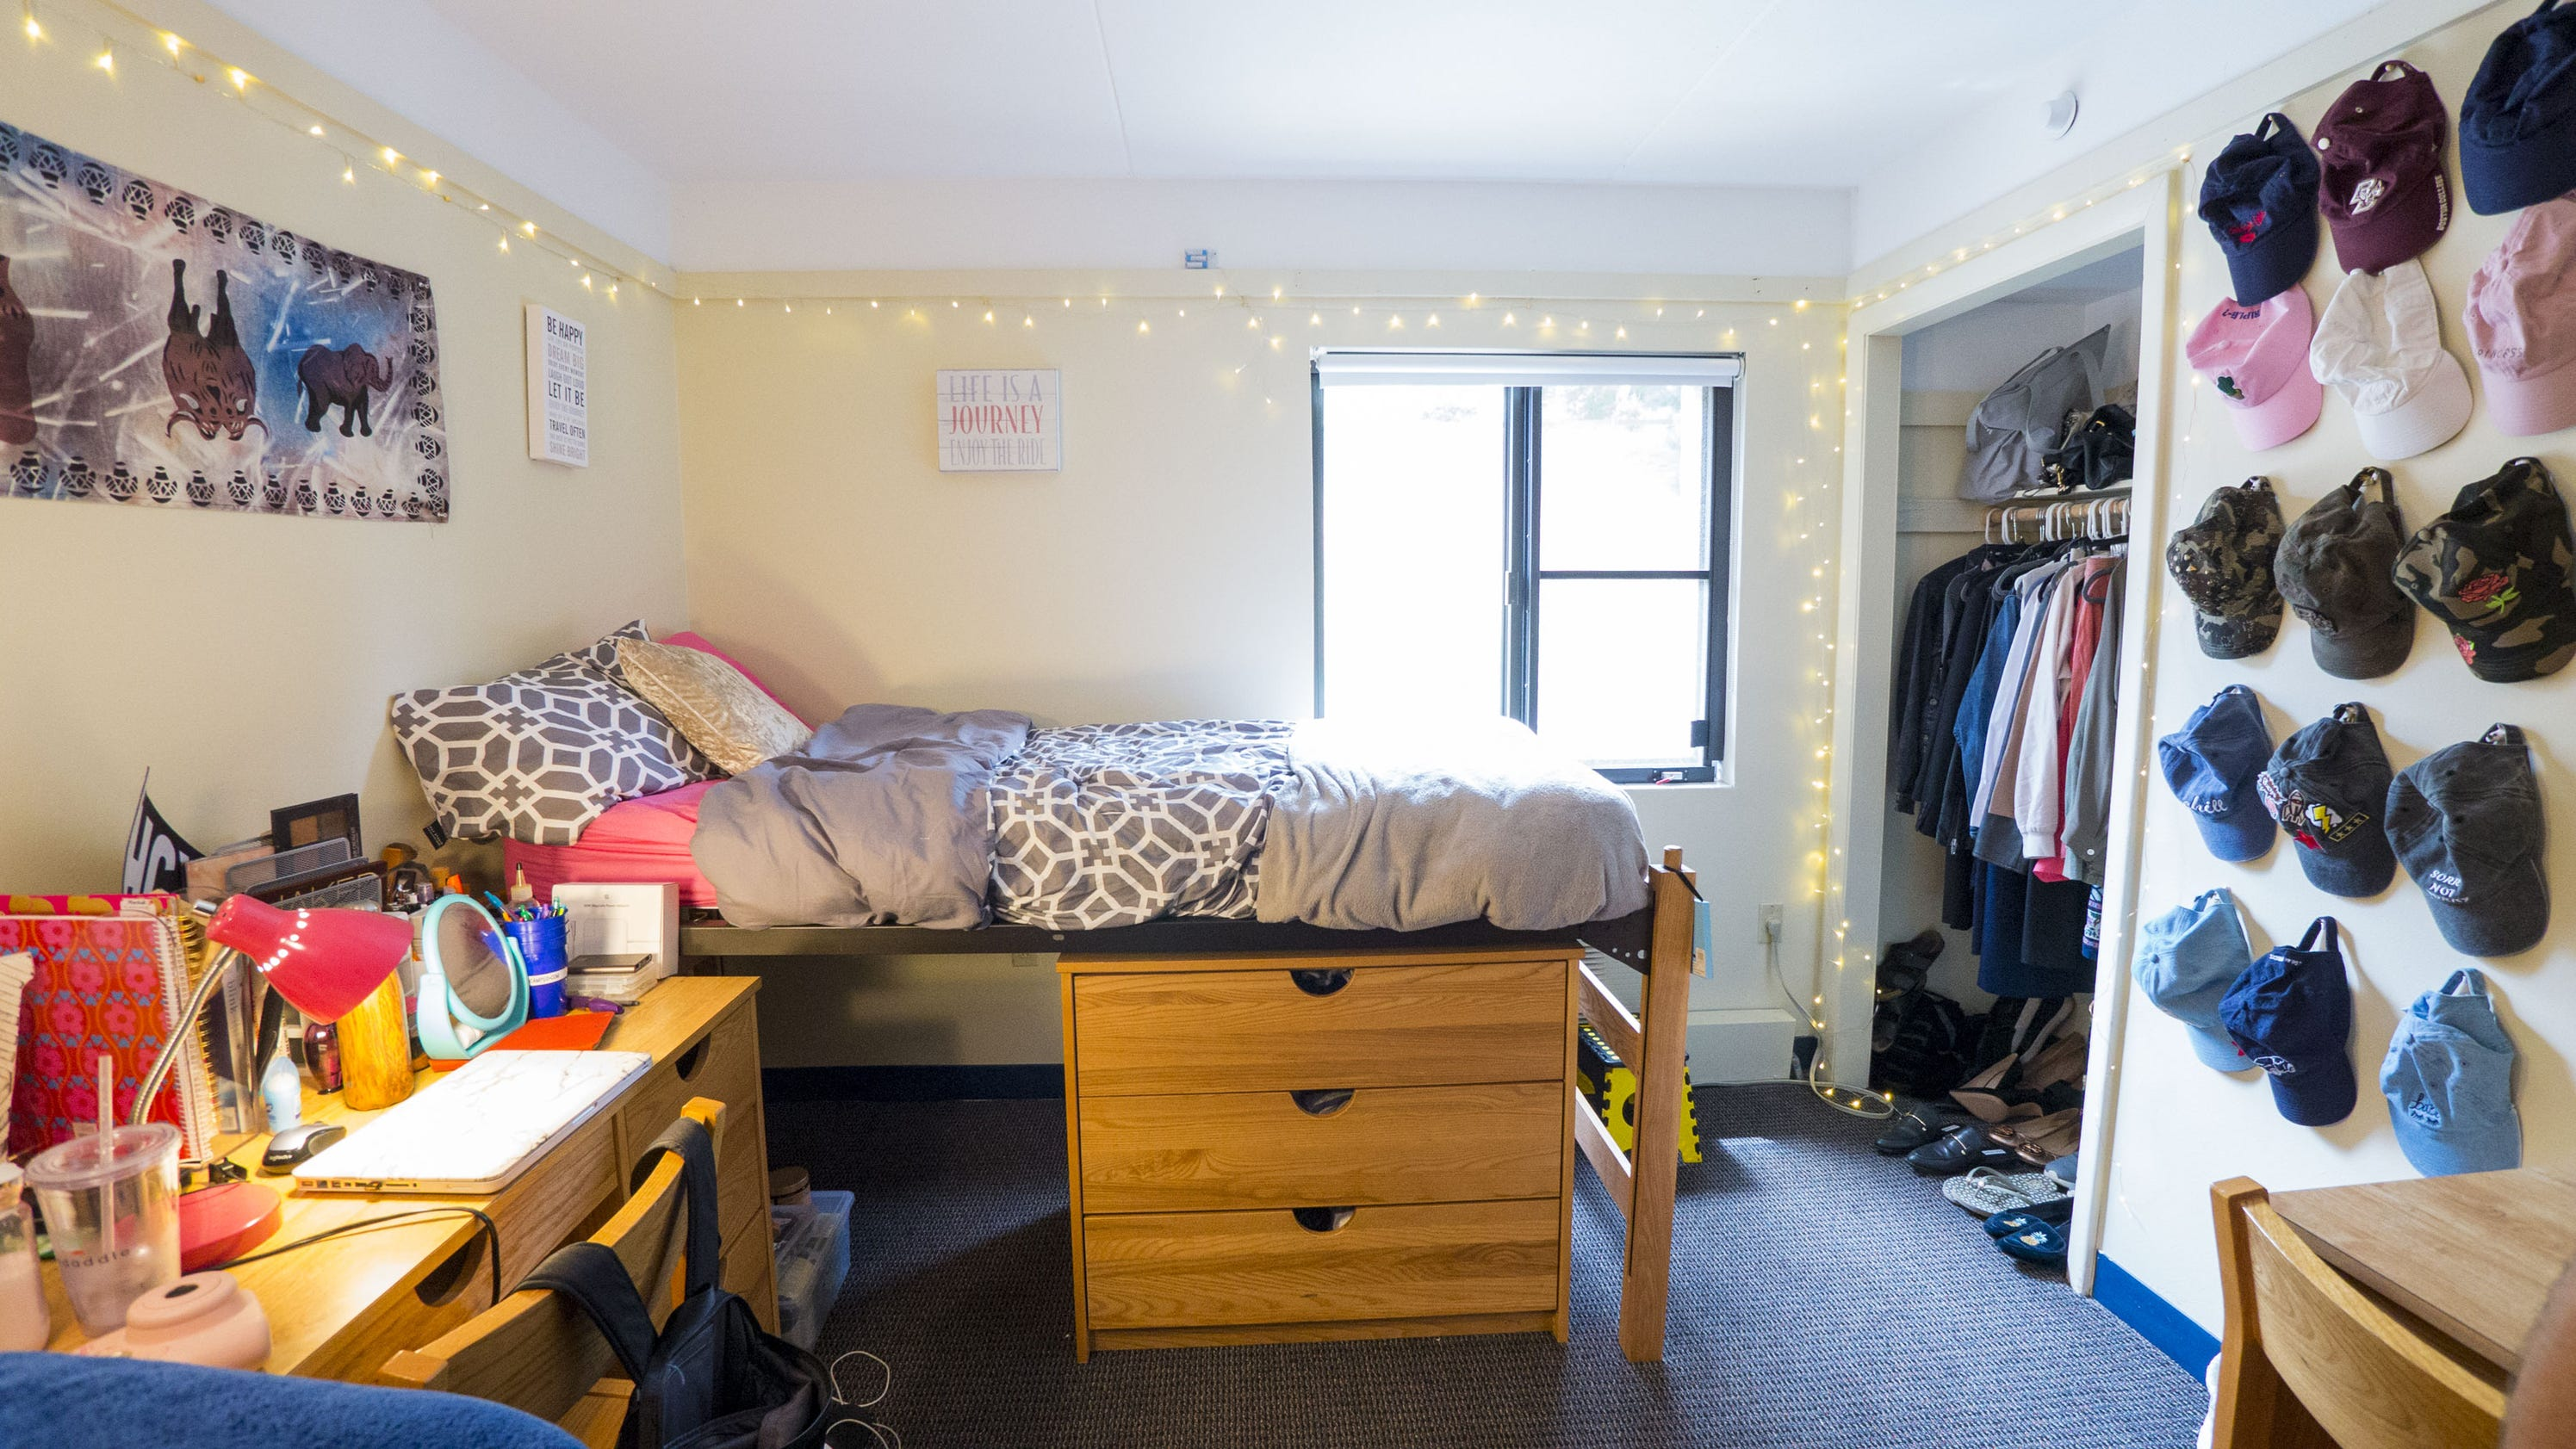 7 ways you can transform a dorm room without hiring an interior designer for Hiring an interior designer on a budget